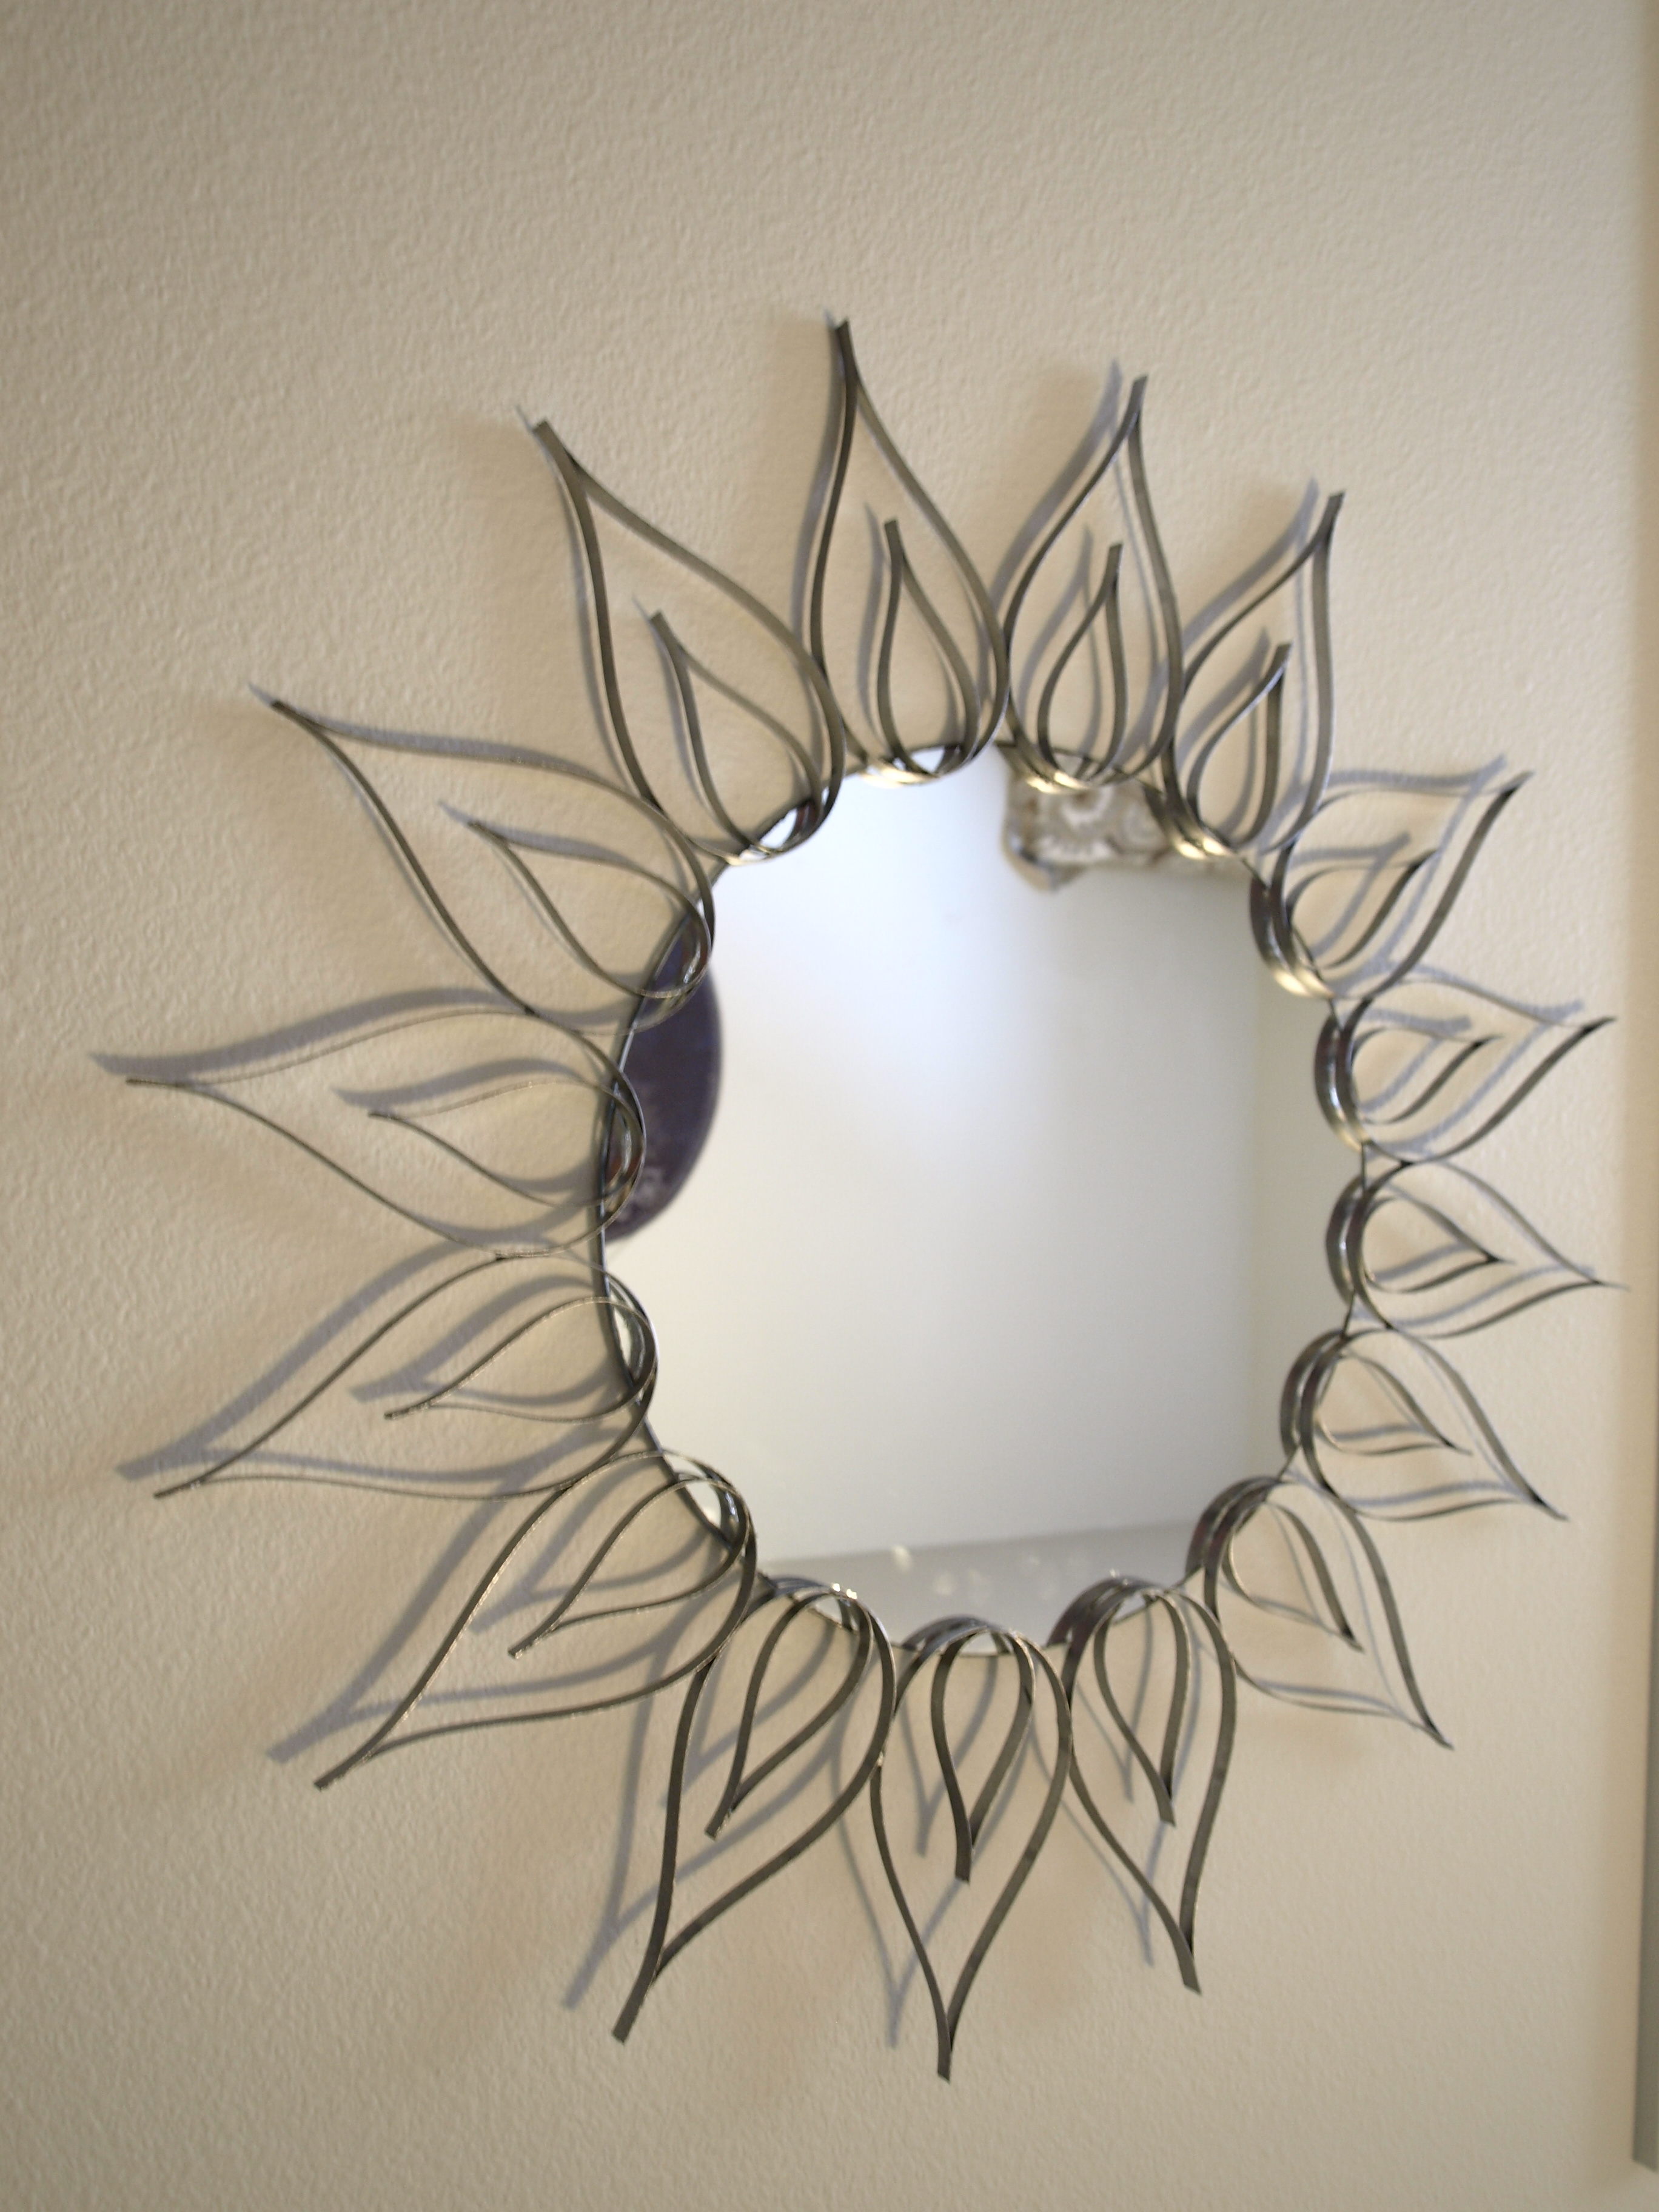 See cate create inspiring you to live creativelycheap for Mirror designs